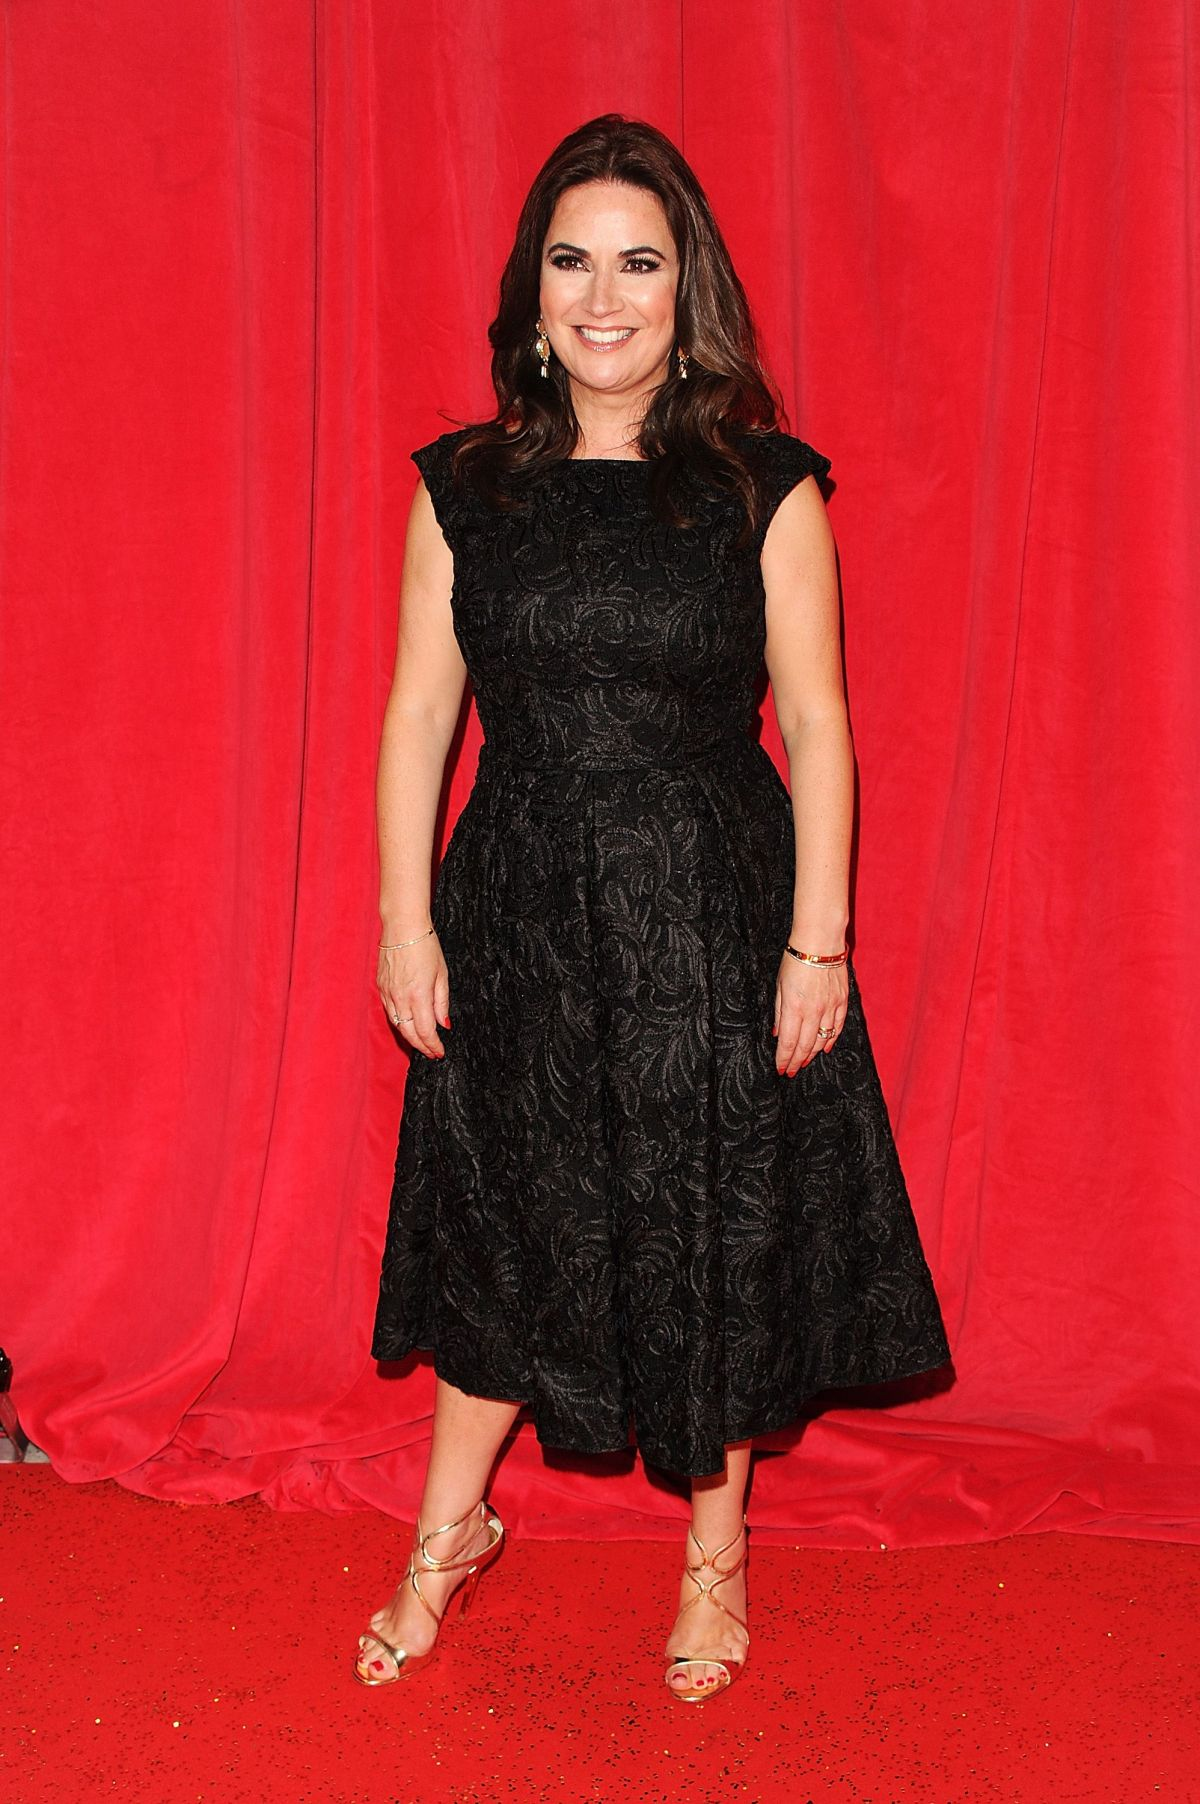 DEBBIE RUSH at British Soap Awards 2014 in London